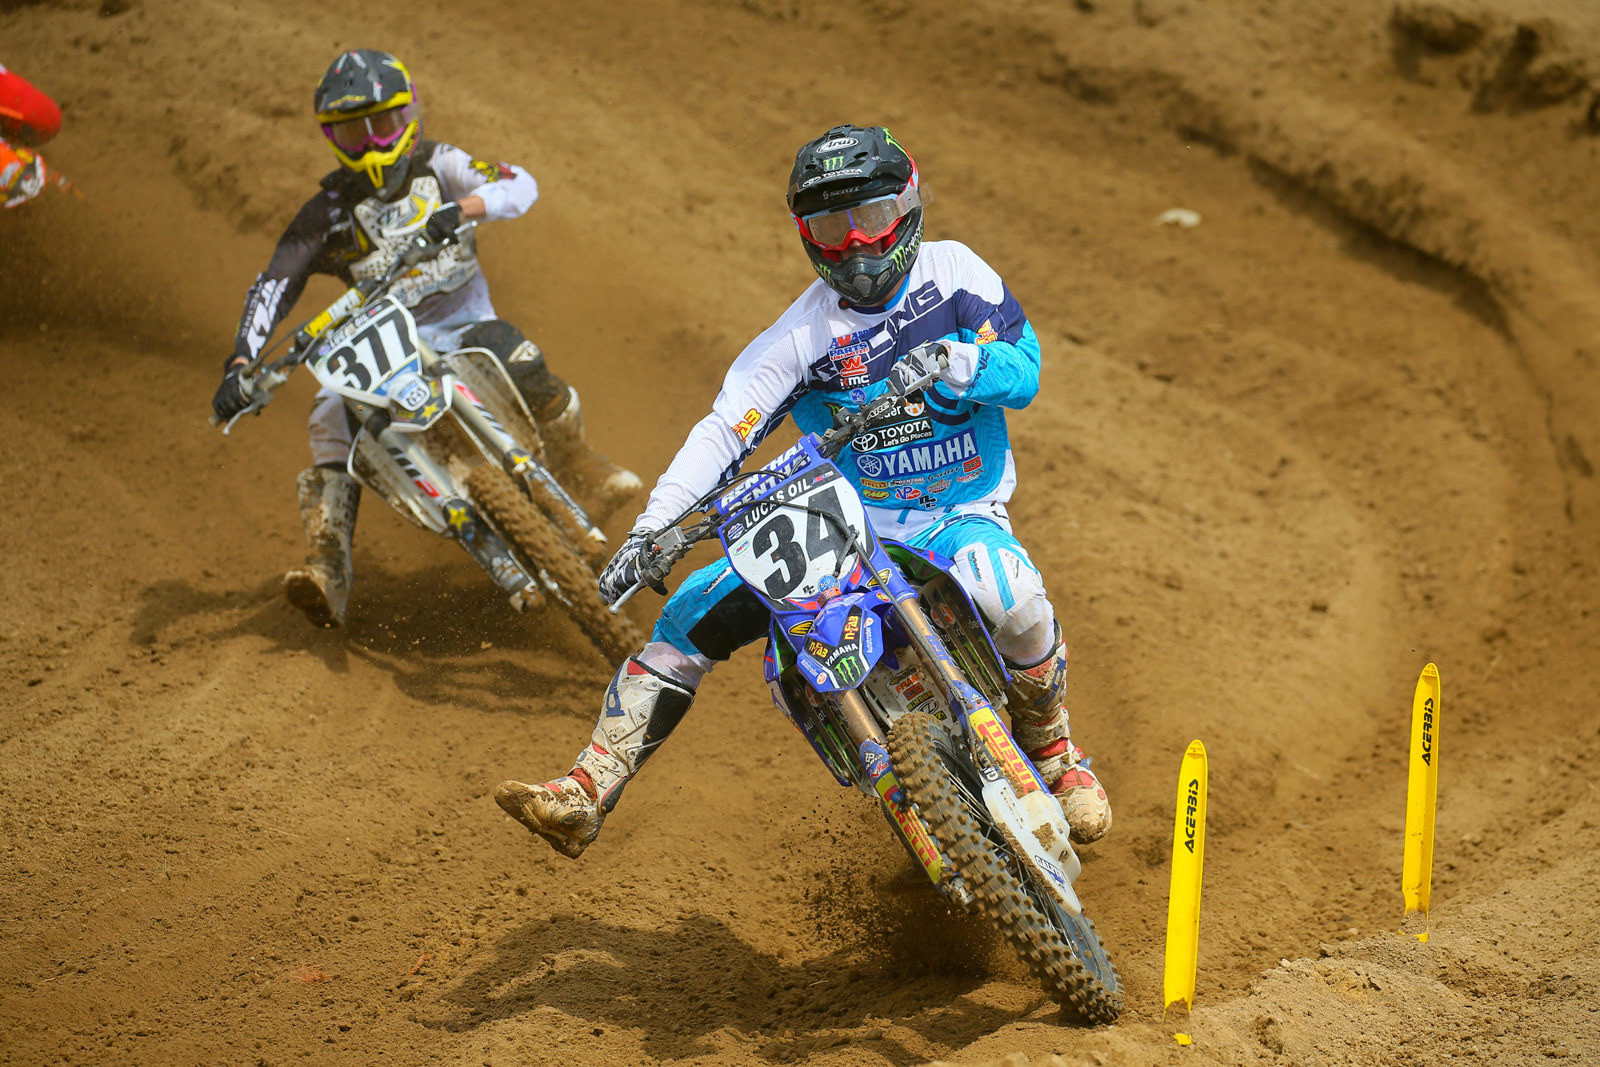 Phil Nicoletti and Christophe Pourcel - Photo Blast: Spring Creek - Motocross Pictures - Vital MX